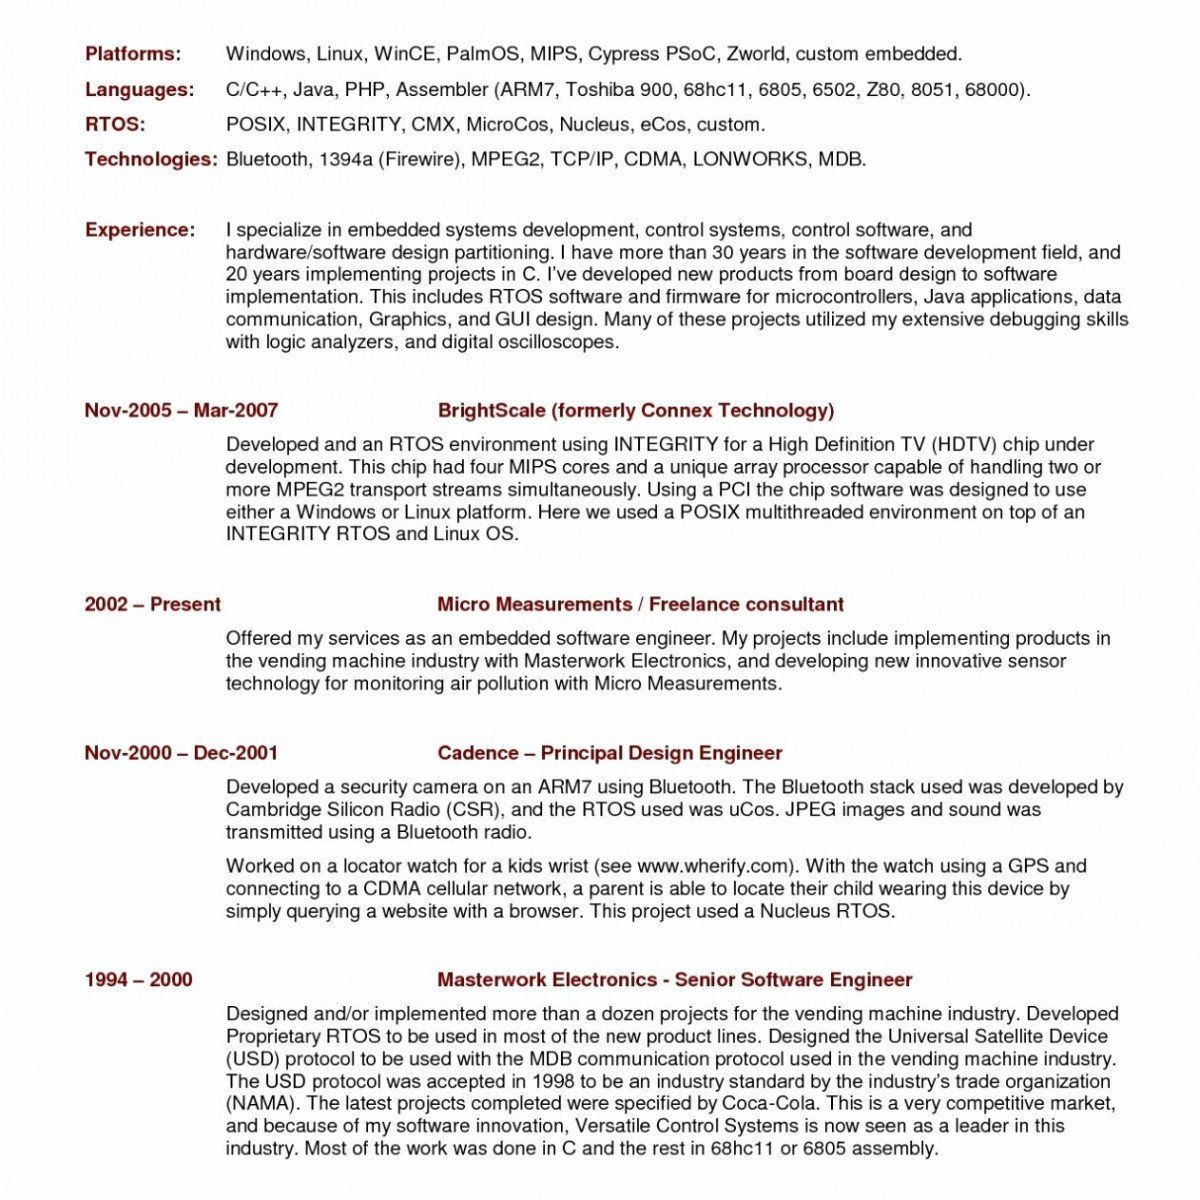 System Engineering Resume Examples New Unique Pr Resume Examples Resume Skills Job Resume Examples Engineering Resume